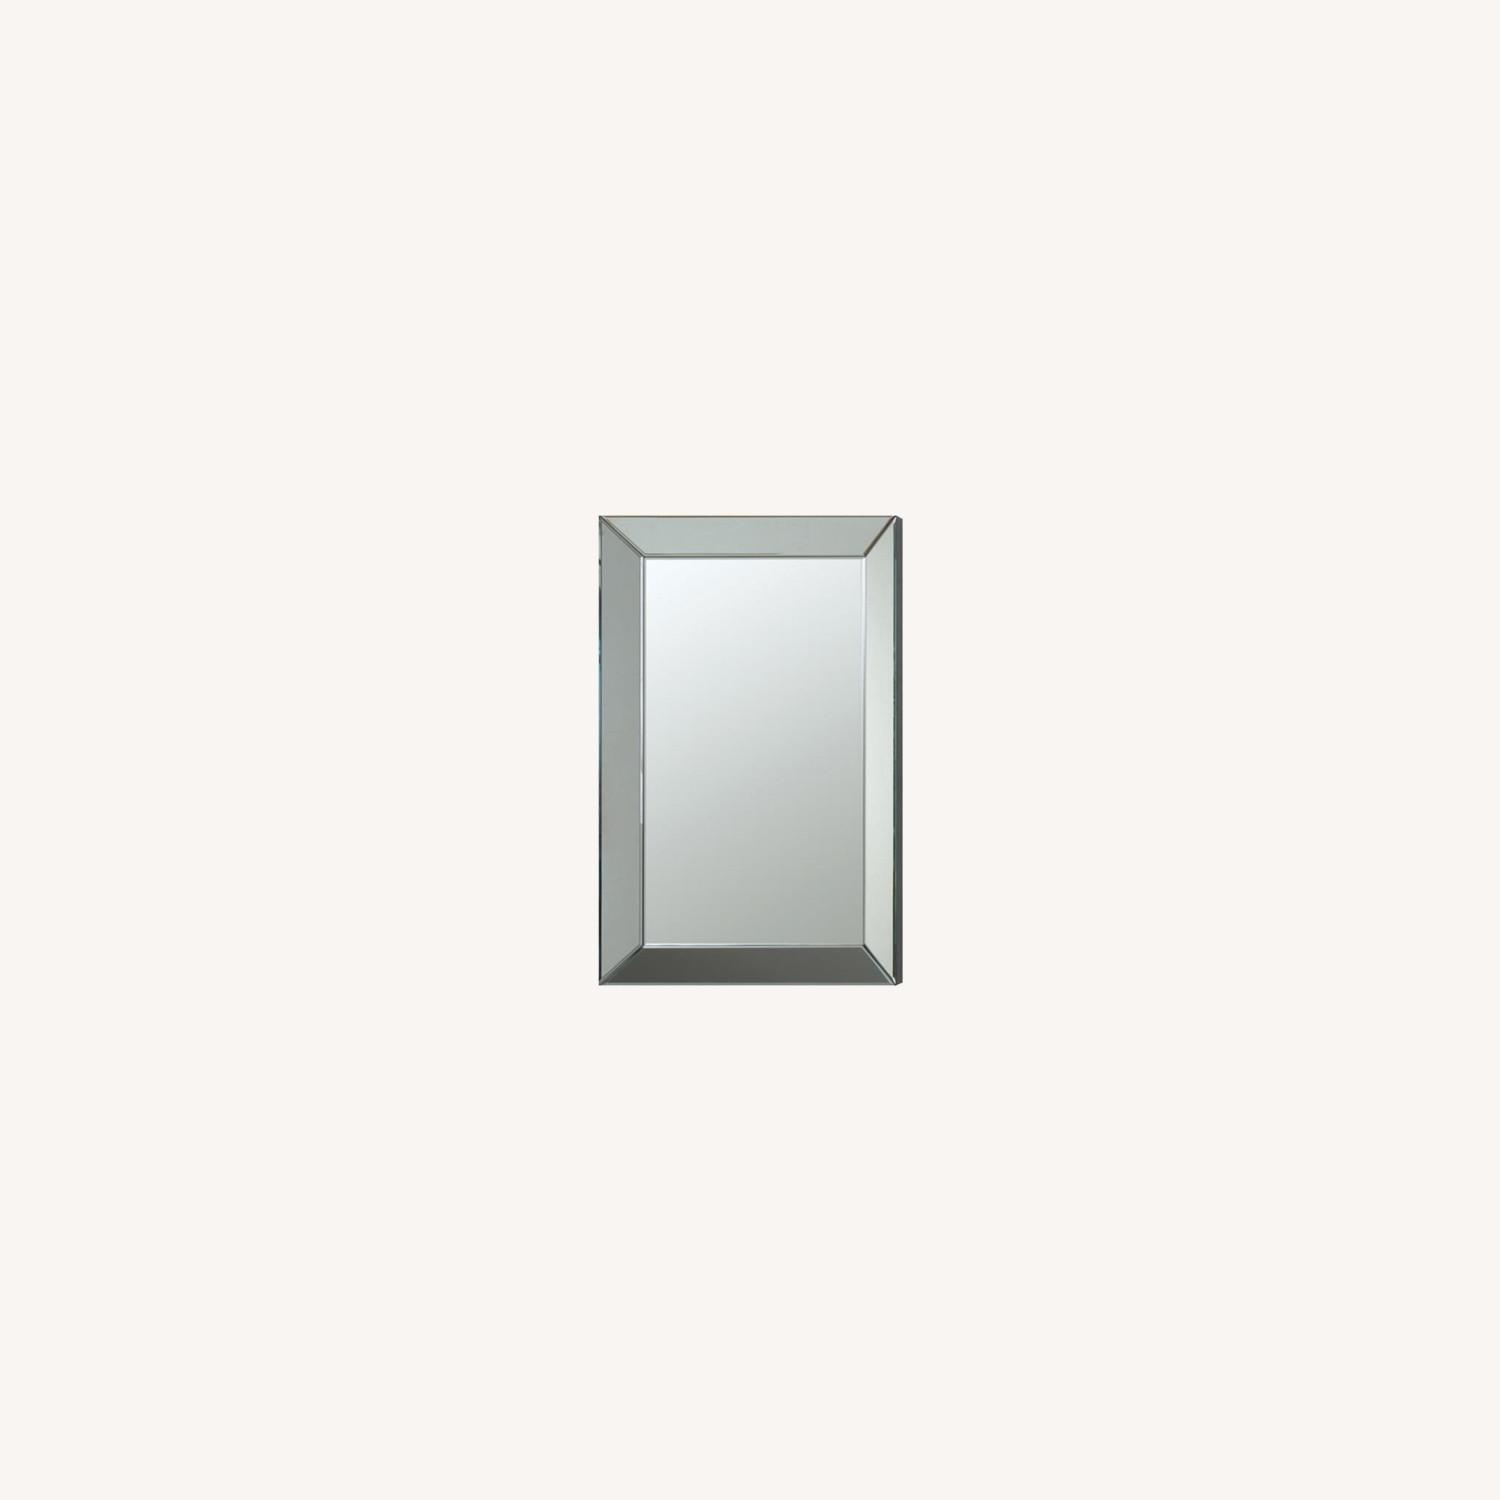 Rectangular Clear Mirror W/ Beveled Edges - image-3